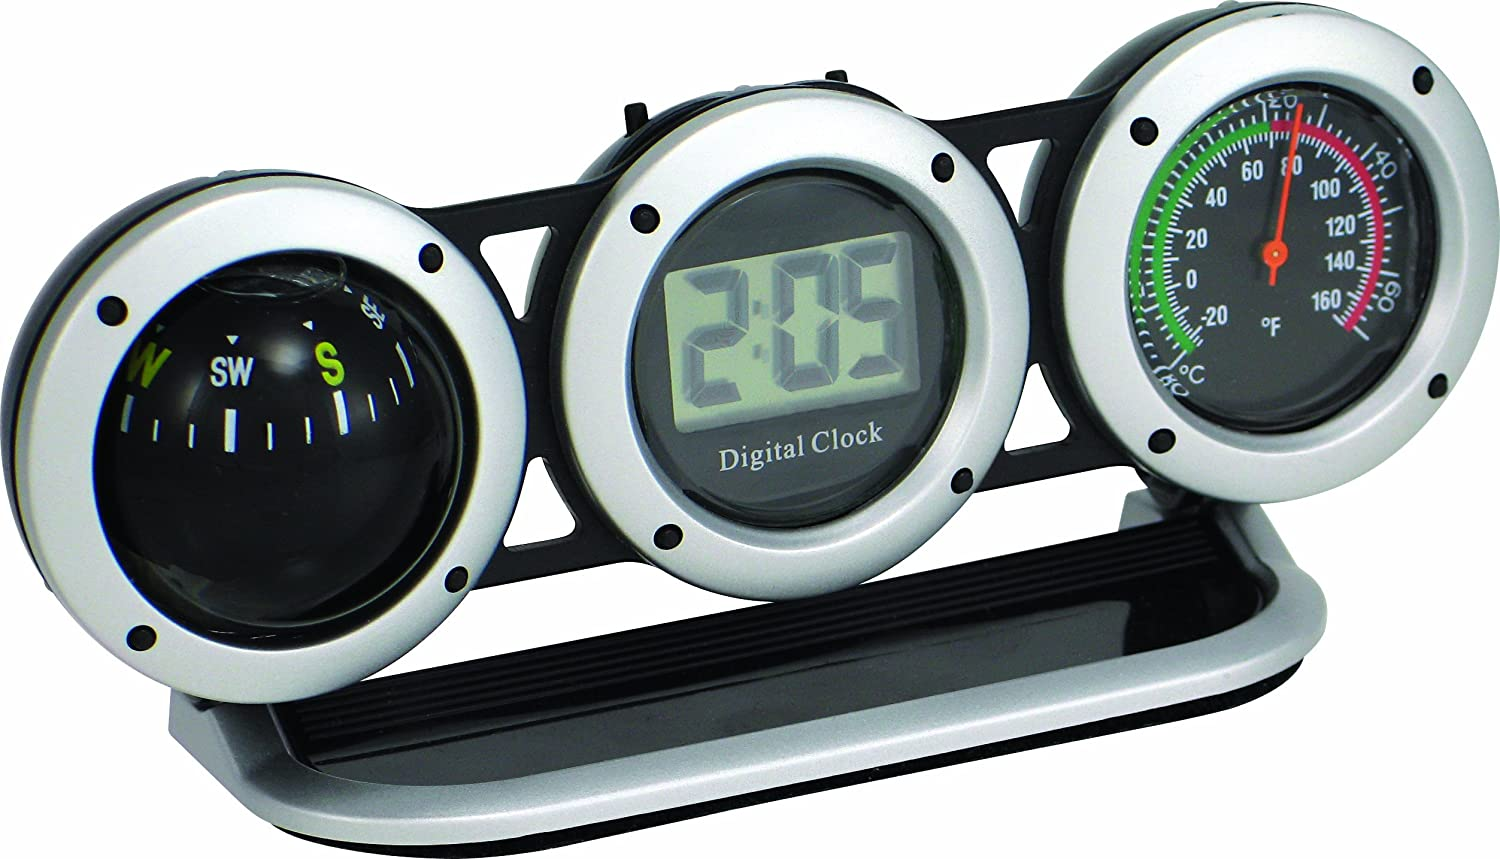 Amazon.com: Bell Automotive 22-1-29015-8 Combo Clock, Compass and Thermometer: Automotive